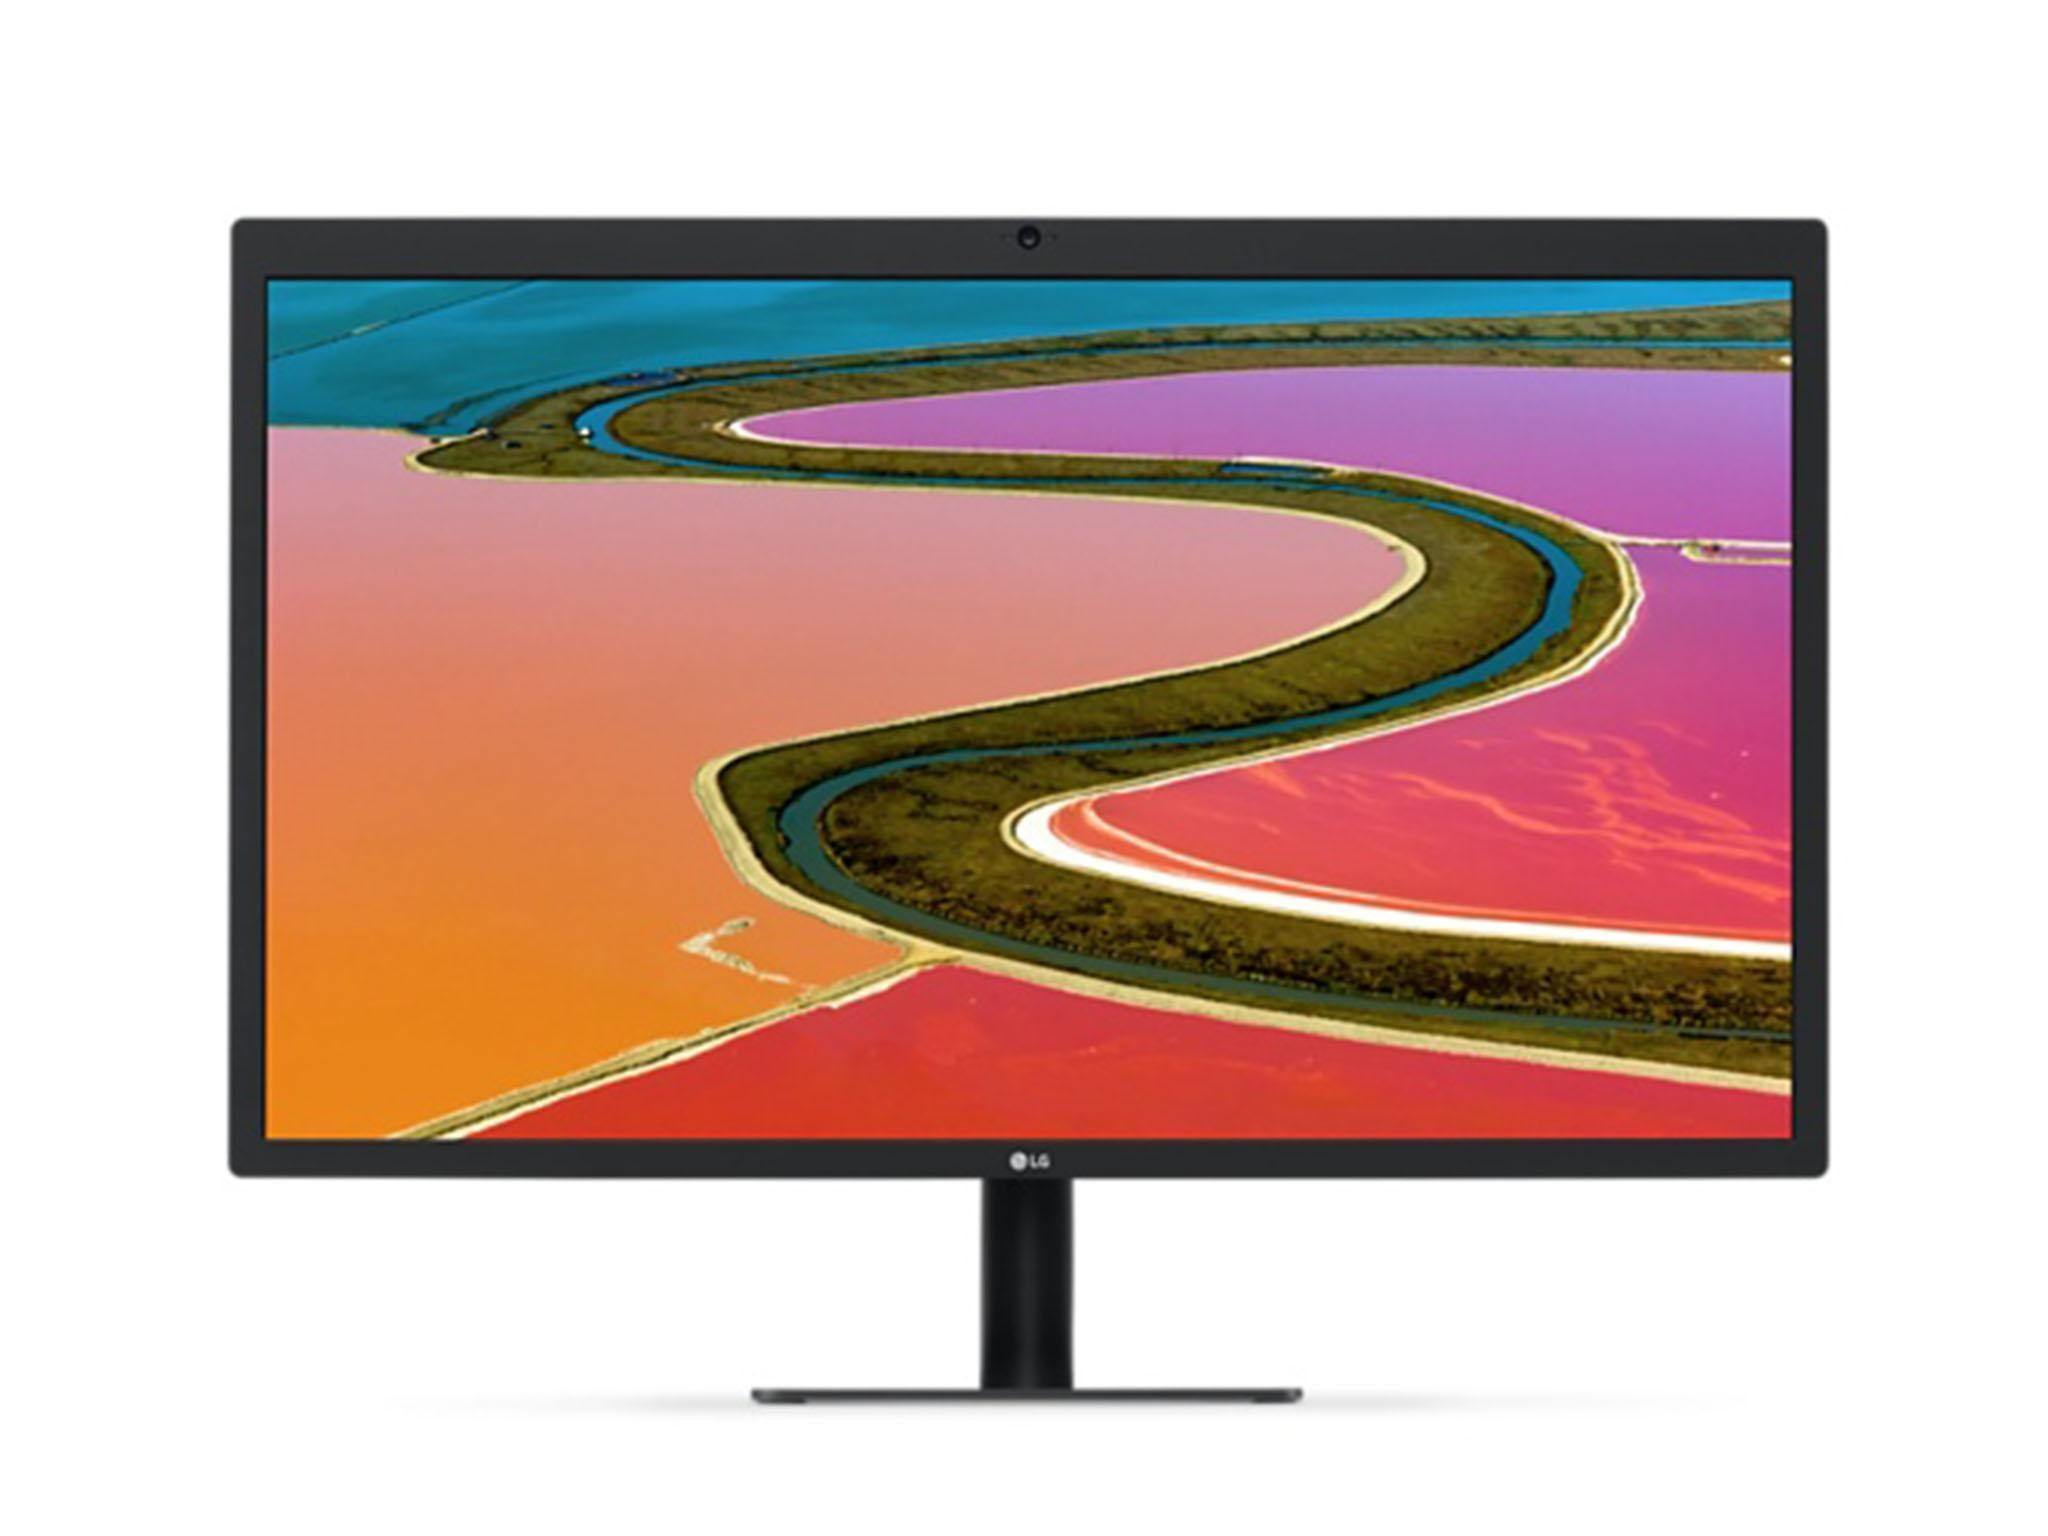 10 best computer monitors | The Independent